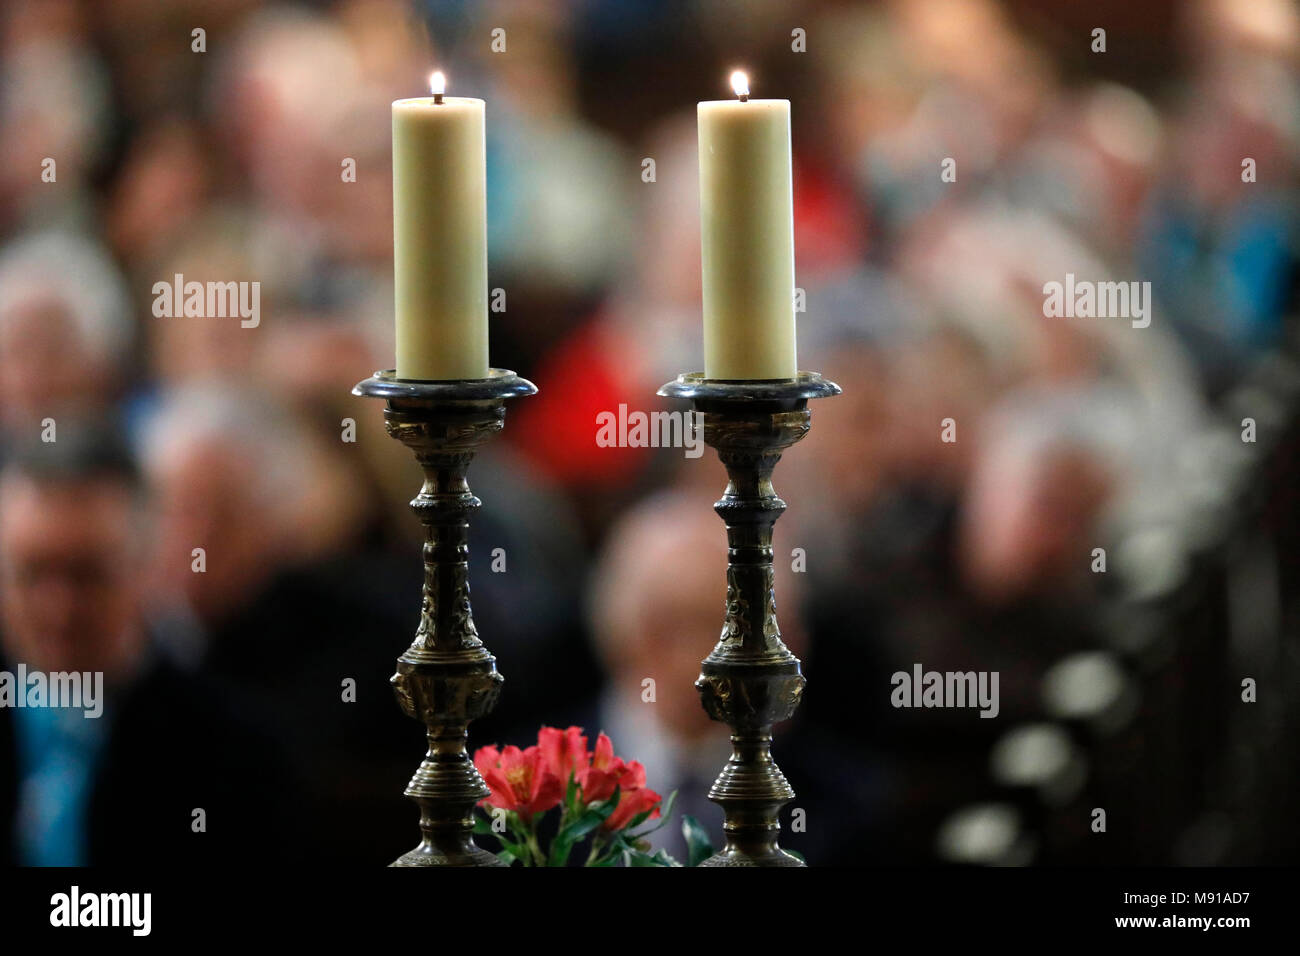 Saint-Pierre-le-Jeune Protestant Church.  Church candles.  Protestant service.  Strasbourg. France. - Stock Image